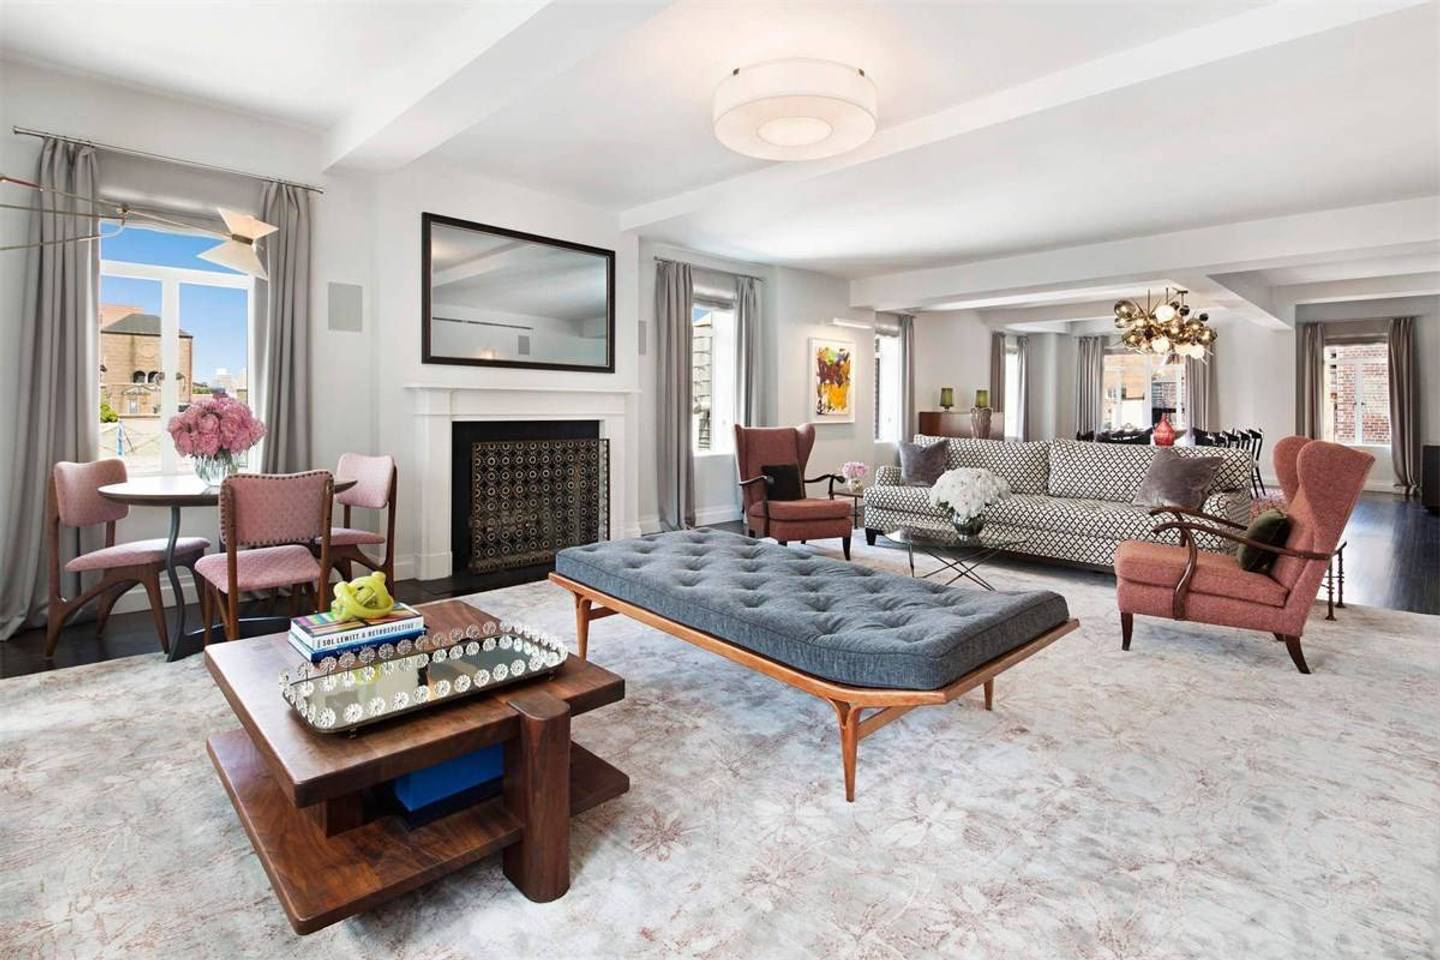 upscale new york apartment close to city attractions